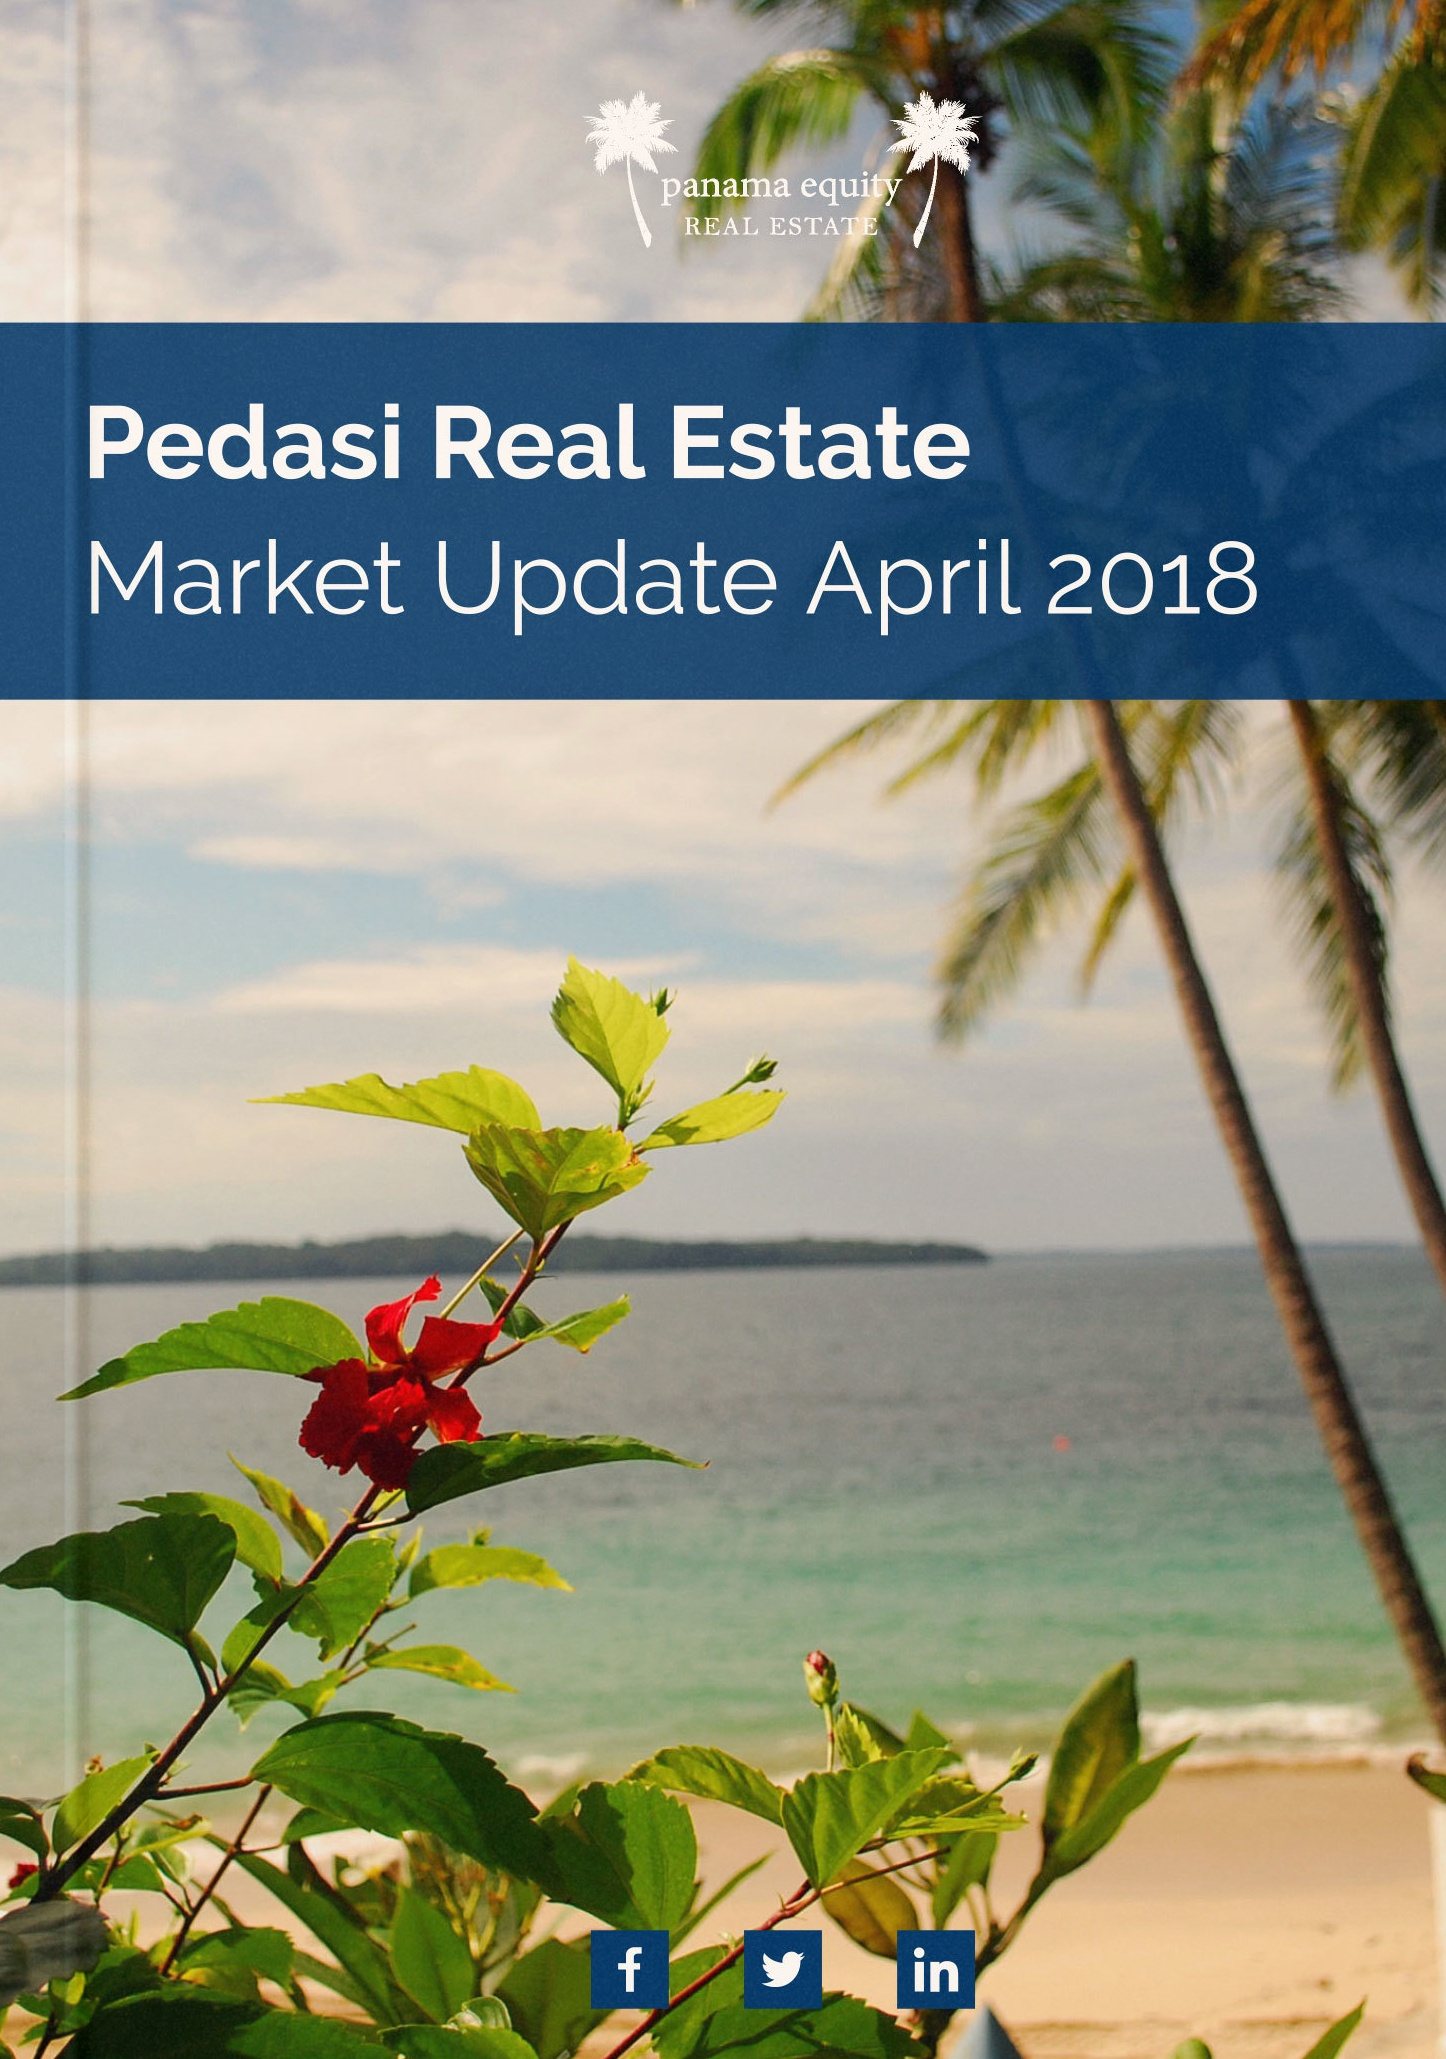 Pedasi Real Estate Market Update